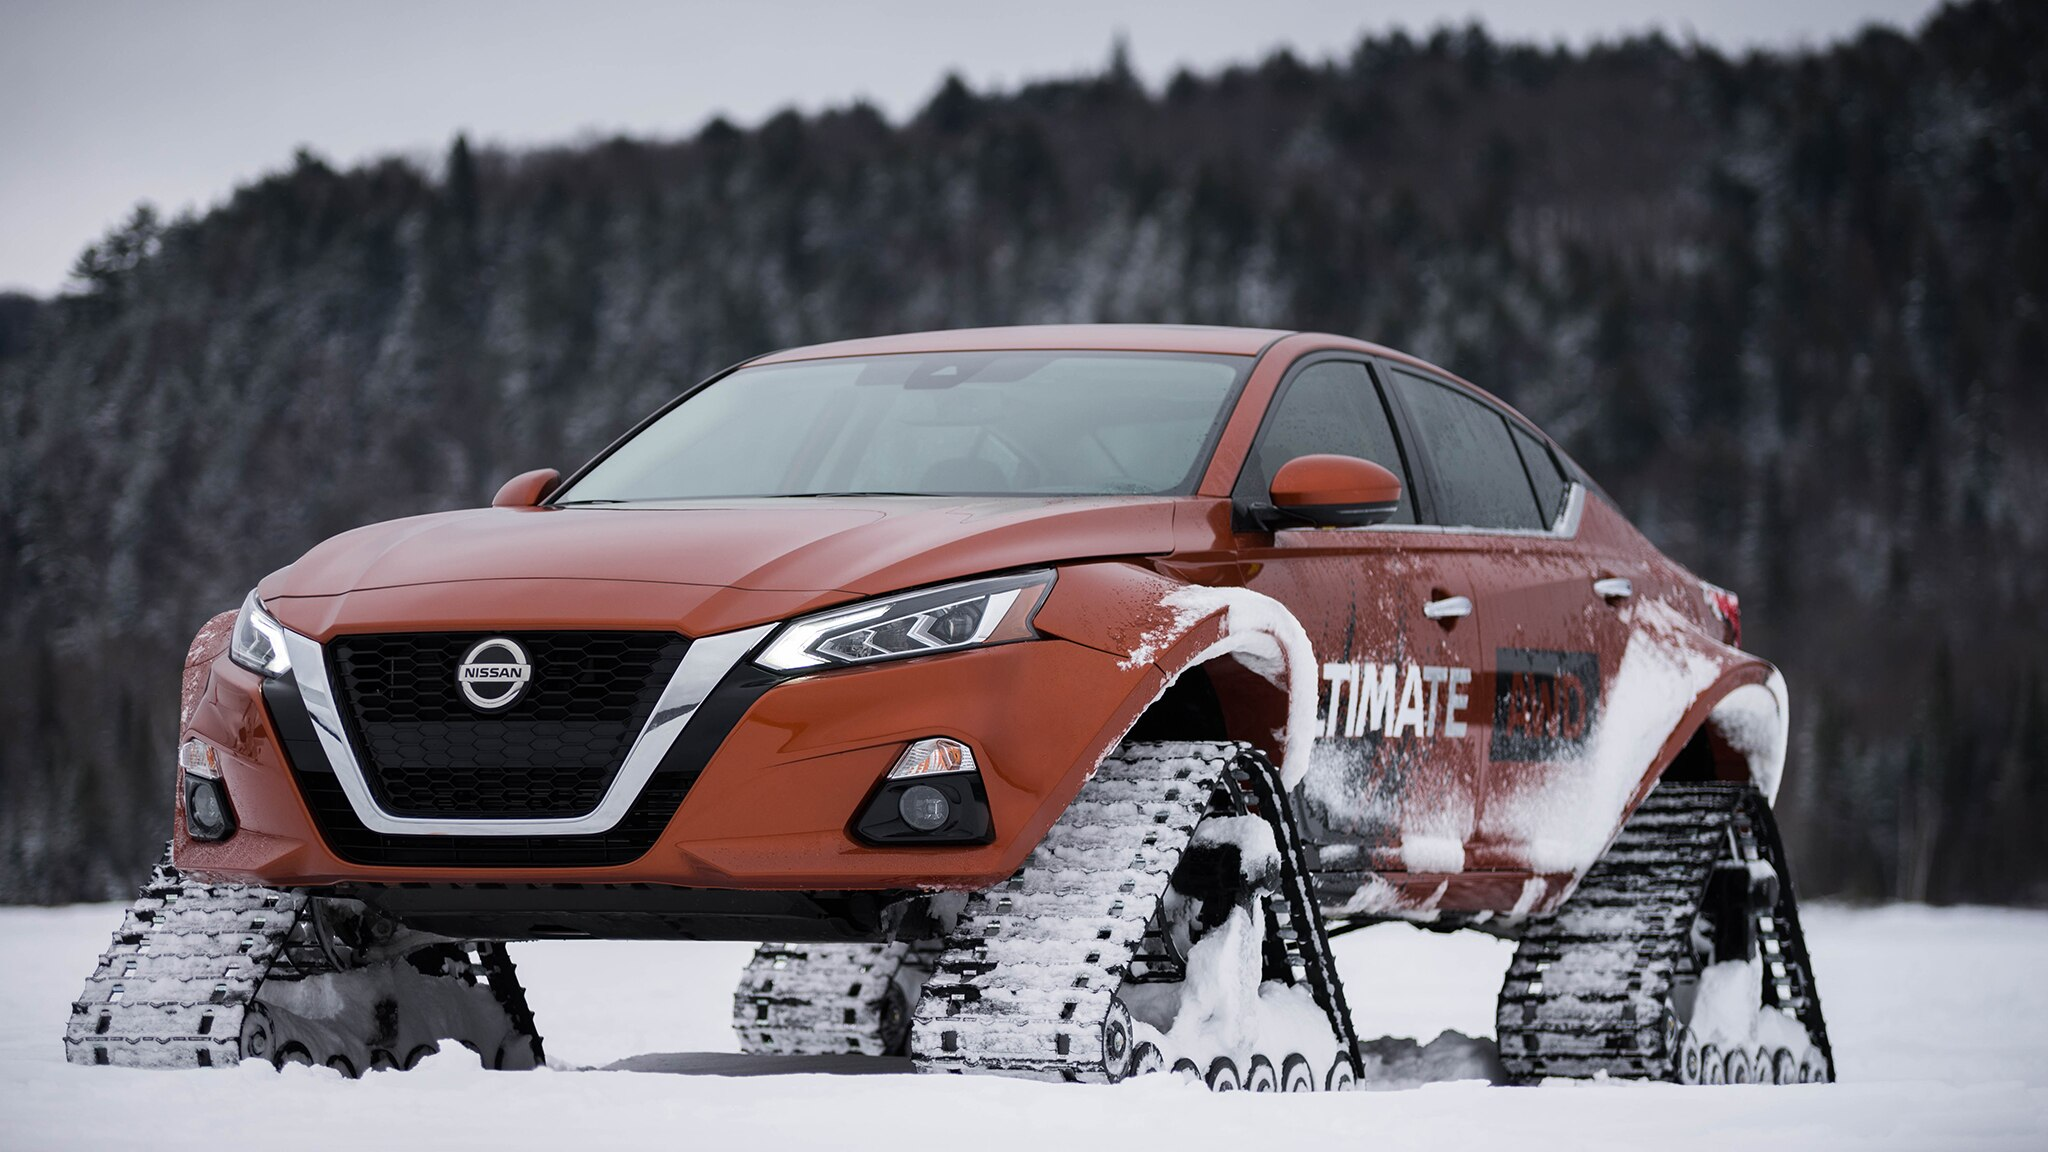 Nissan turned the Altima into snowmobile